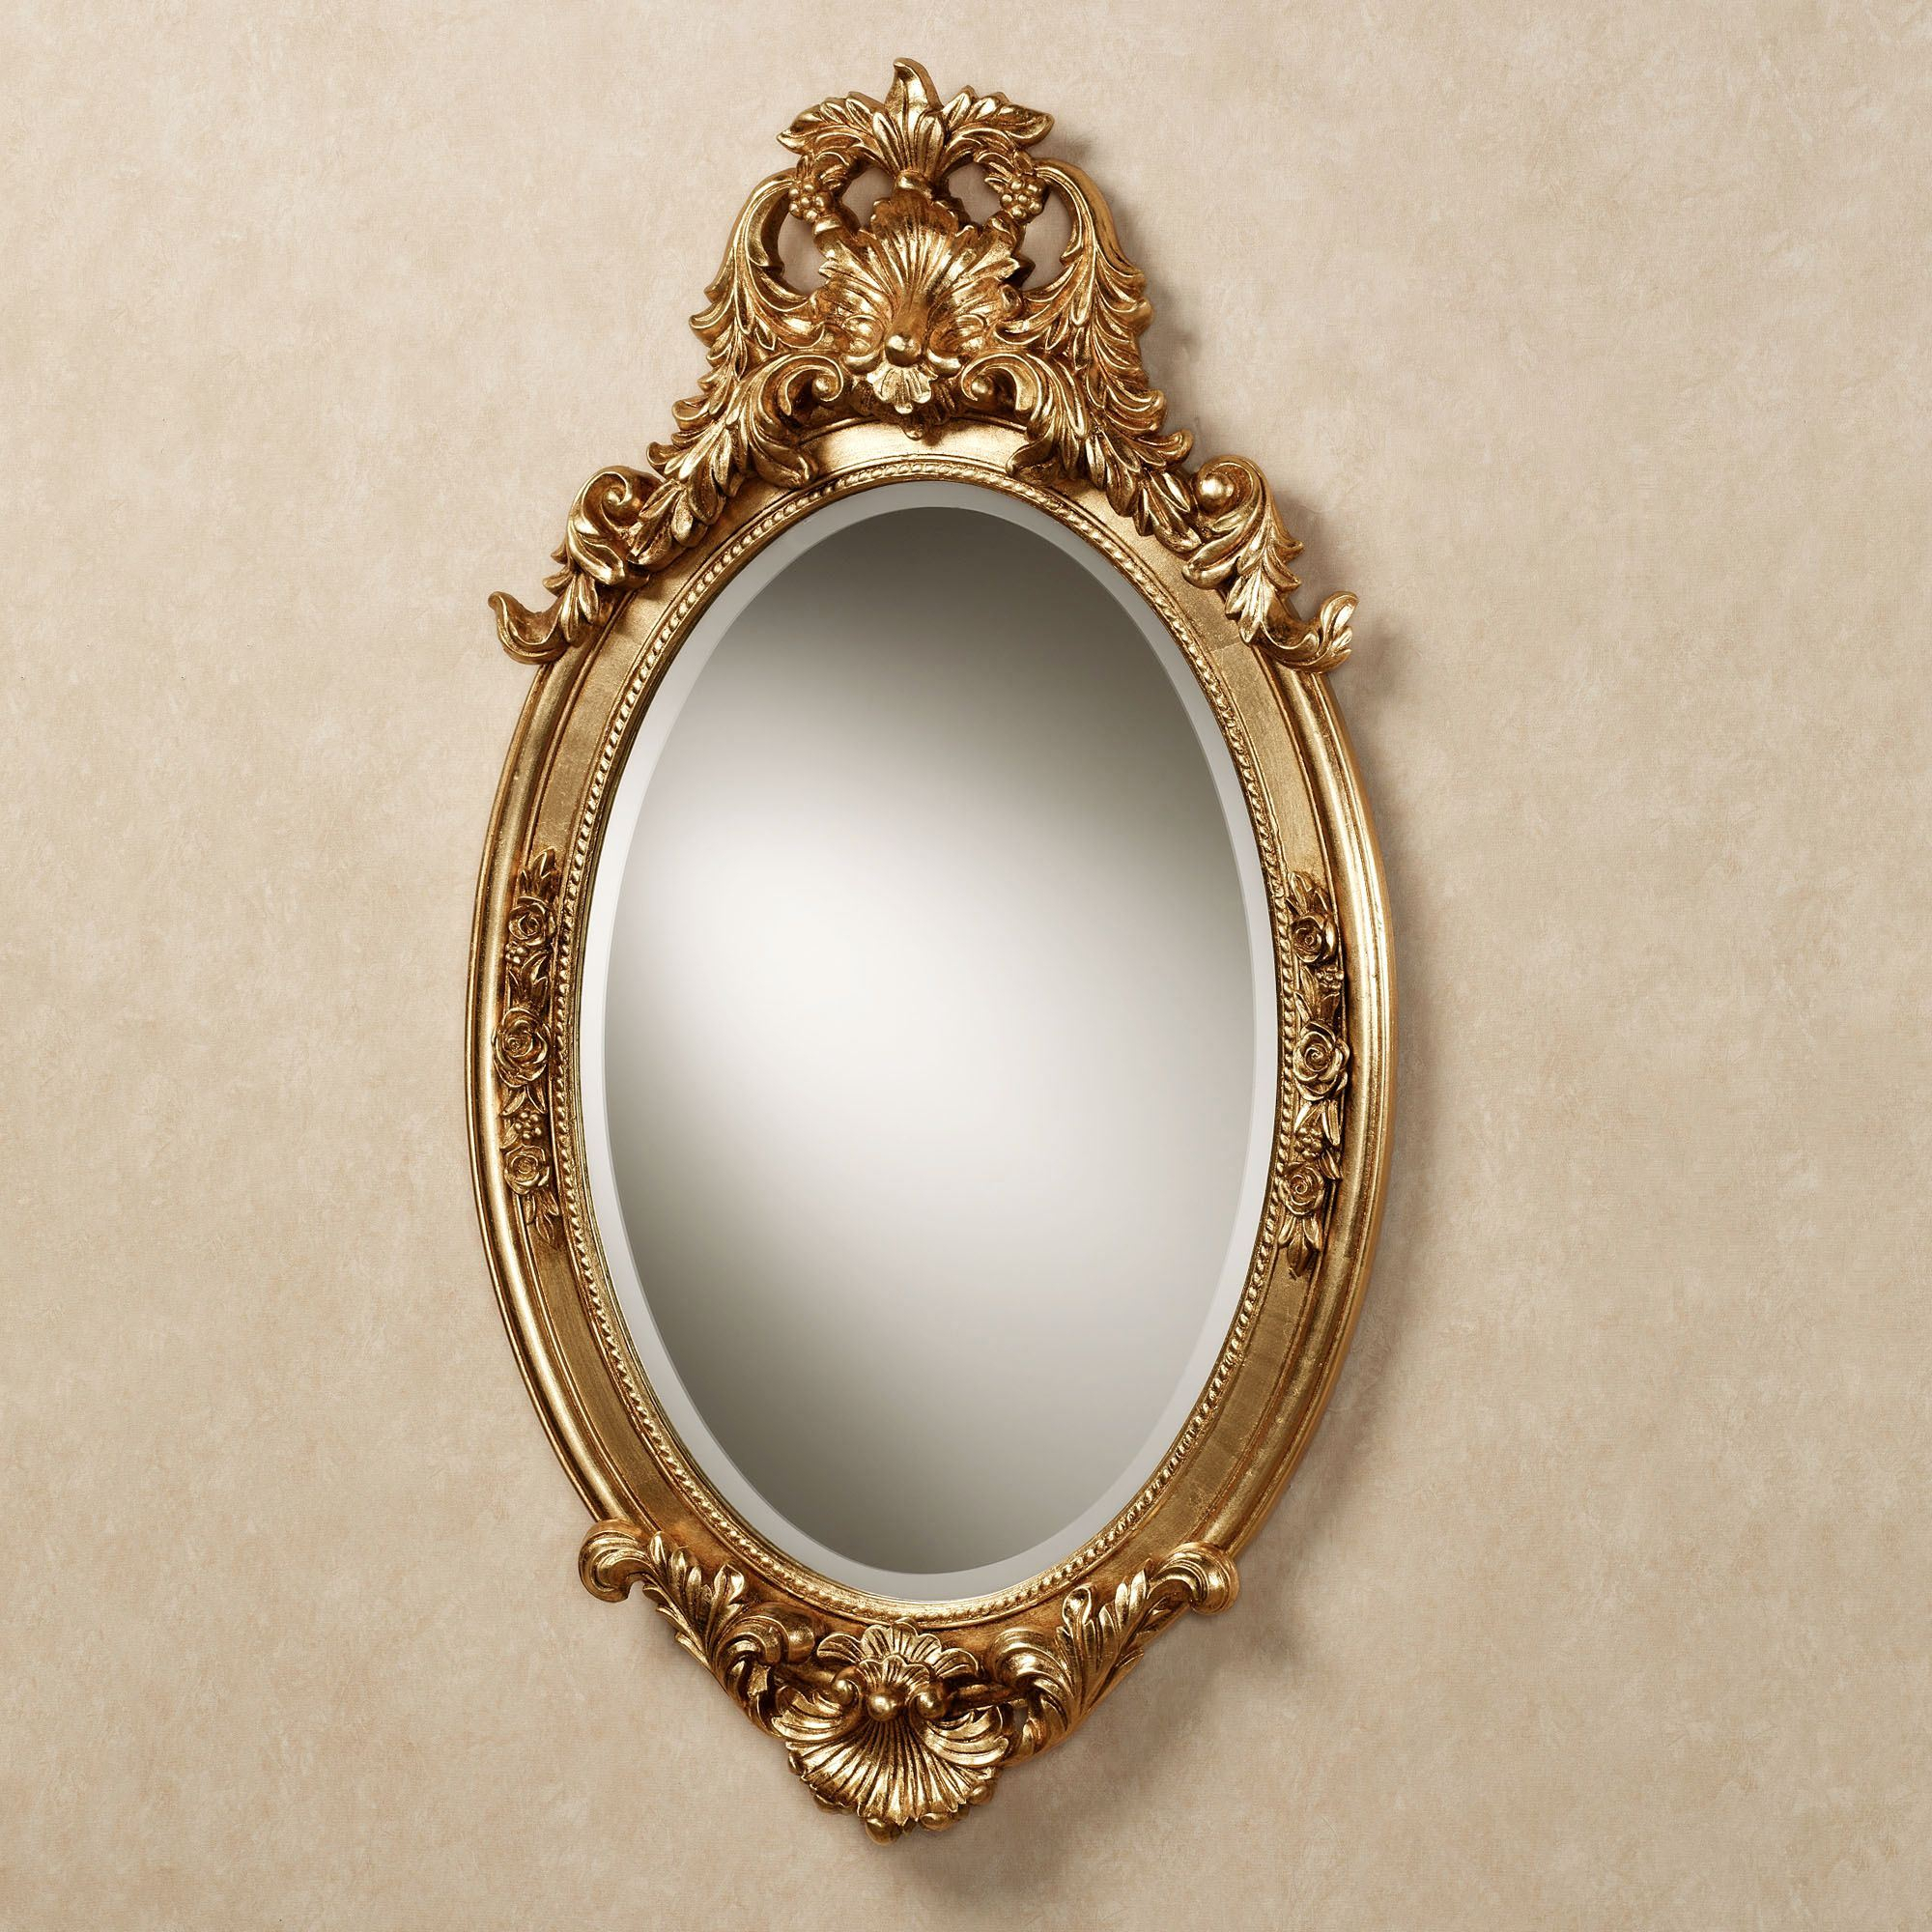 Hallandale Acanthus Leaf Oval Wall Mirror Throughout Traditional Accent Mirrors (View 15 of 30)